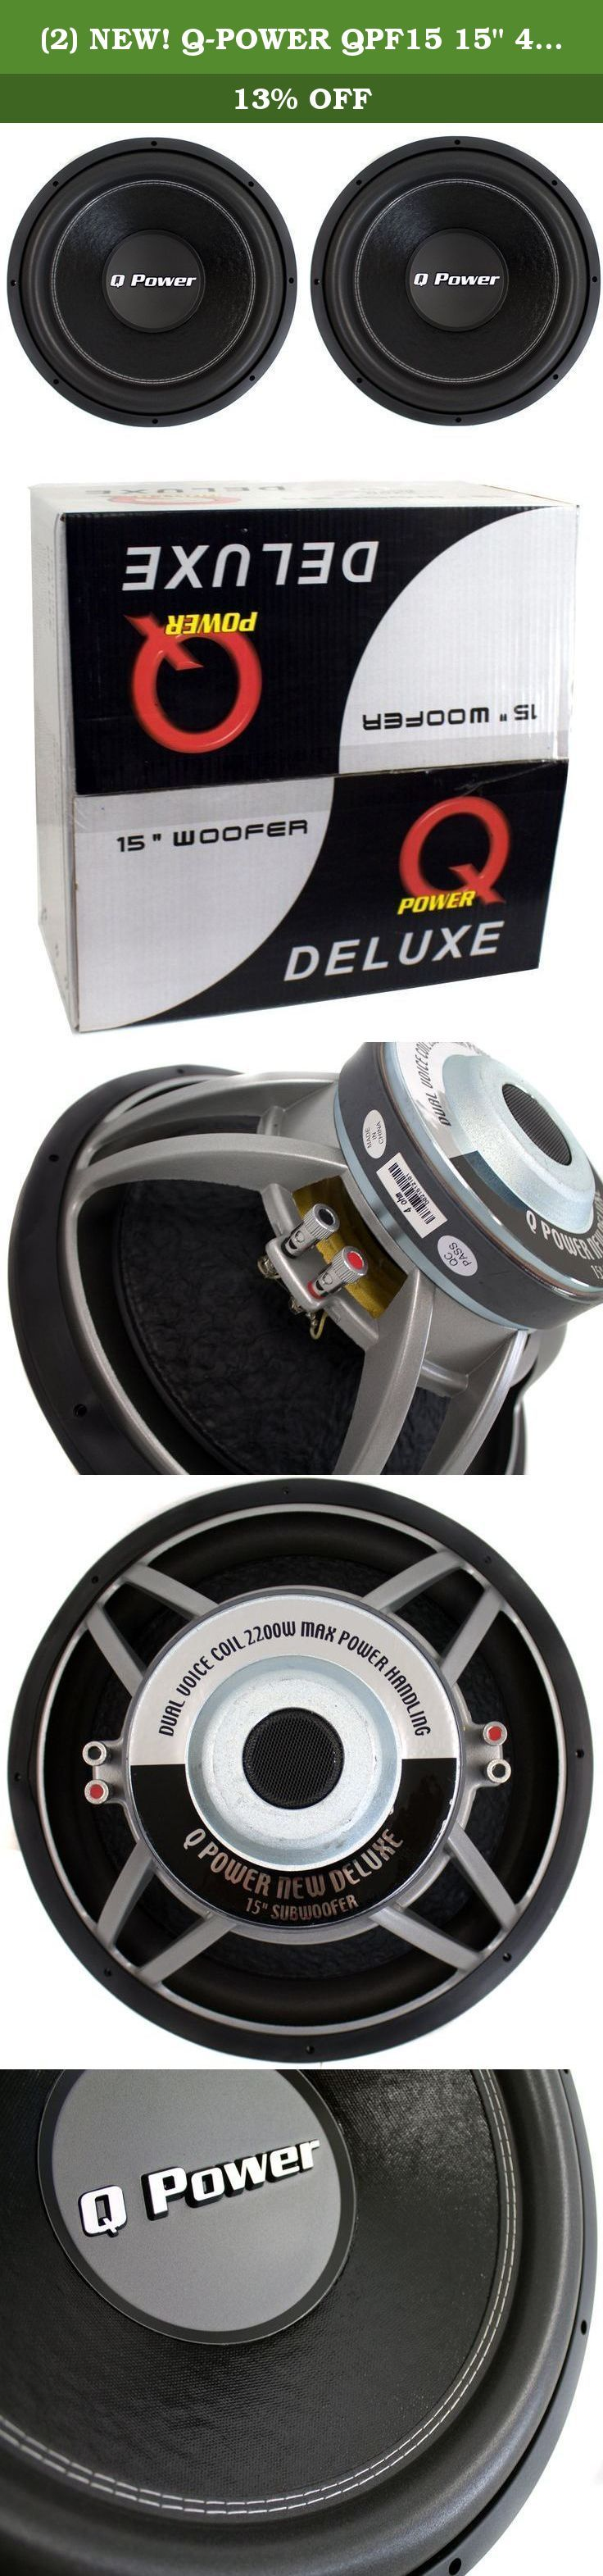 "(2) NEW! Q-POWER QPF15 15"" 4400 Watt Deluxe Series DVC Car Audio Subwoofers Subs. Package Includes: (2) Q-Power QPF15 2200 Watt Subwoofers ---------- The Q-Power QPF15 15"" Deluxe Series Dual Voice Coil Car Audio Subwoofer can handle 2200 Watts of MAX Power. It features a 90 oz. magnet weight, dual voice coil, large foam surround, a 3"" voice coil, an impedance of 4-Ohms, and a vented chrome magnet. Let the Q-POWER QPF15 15"" 2200W Deluxe Series Dual Voice Coil Car Audio Subwoofer thump your..."